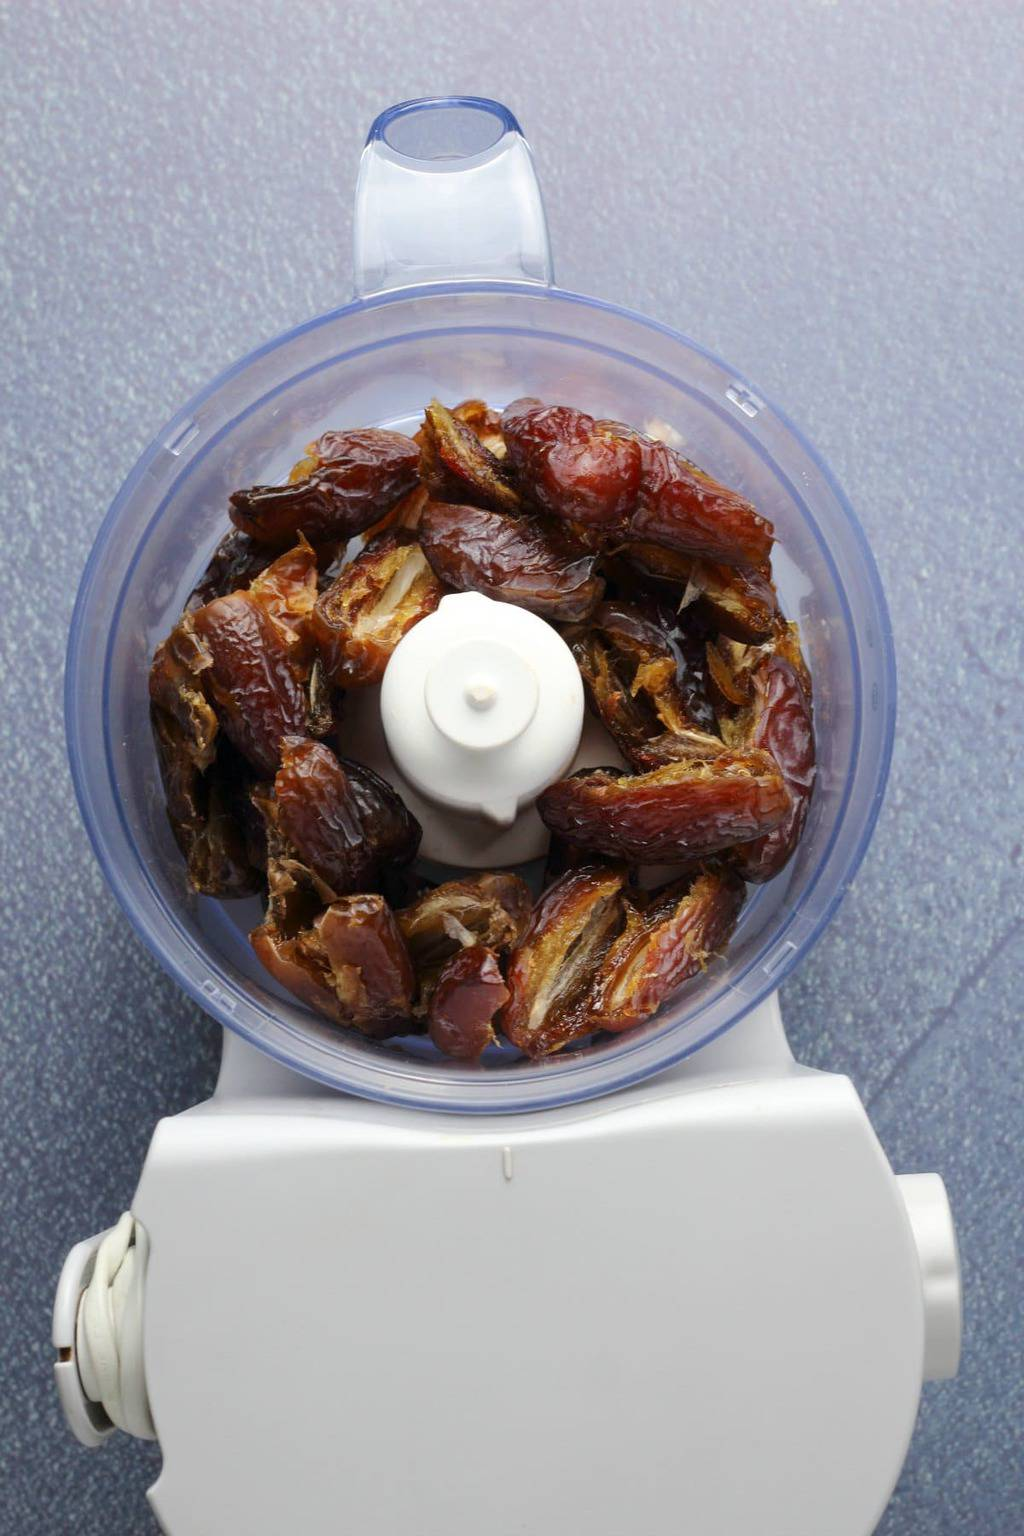 Dates in a food processor.